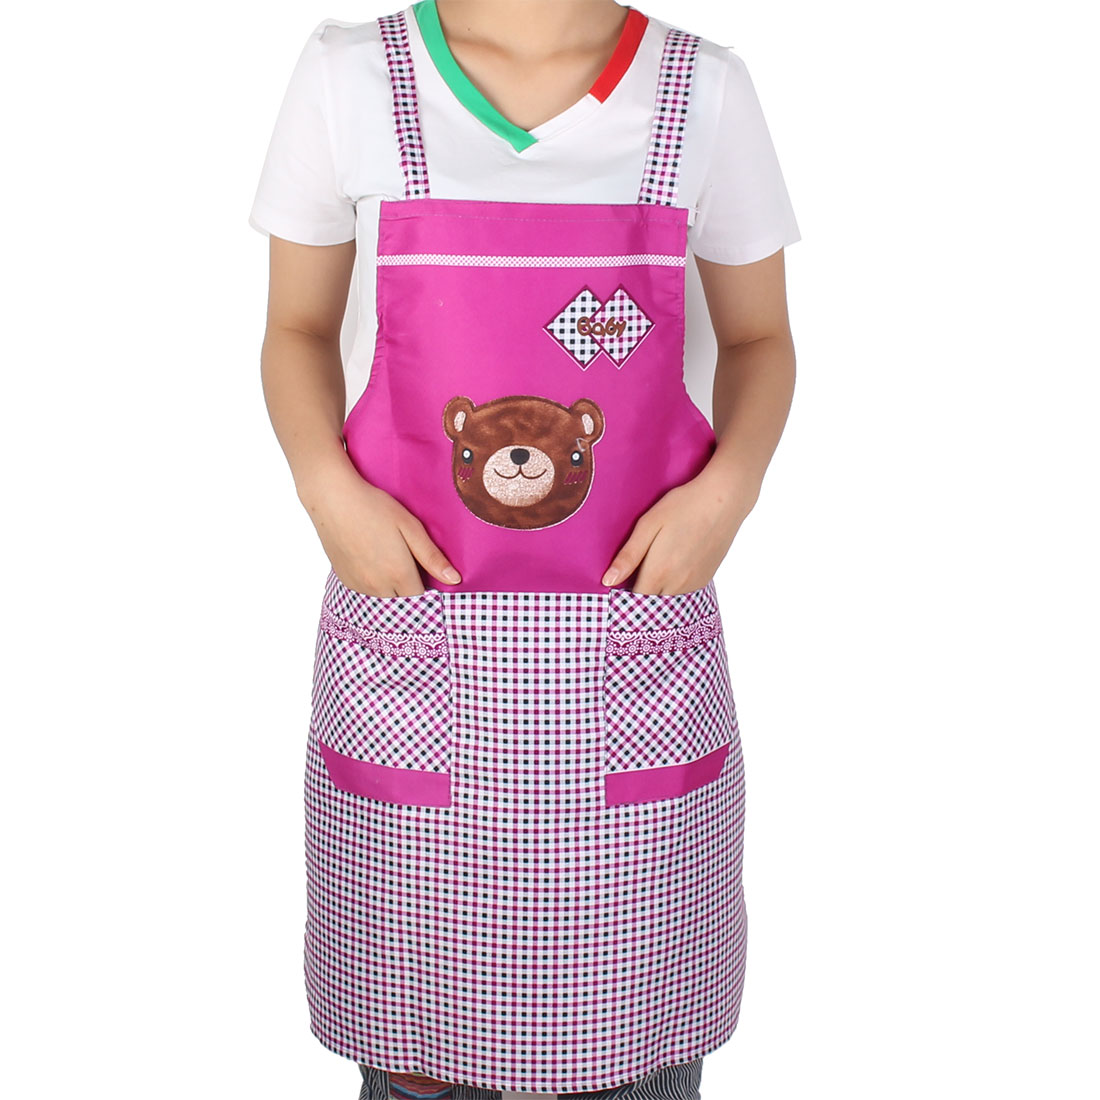 Household Kitchen Dining Bar Cartoon Printed Check Pattern Double Front Pocket Bib Dress Apron Purple